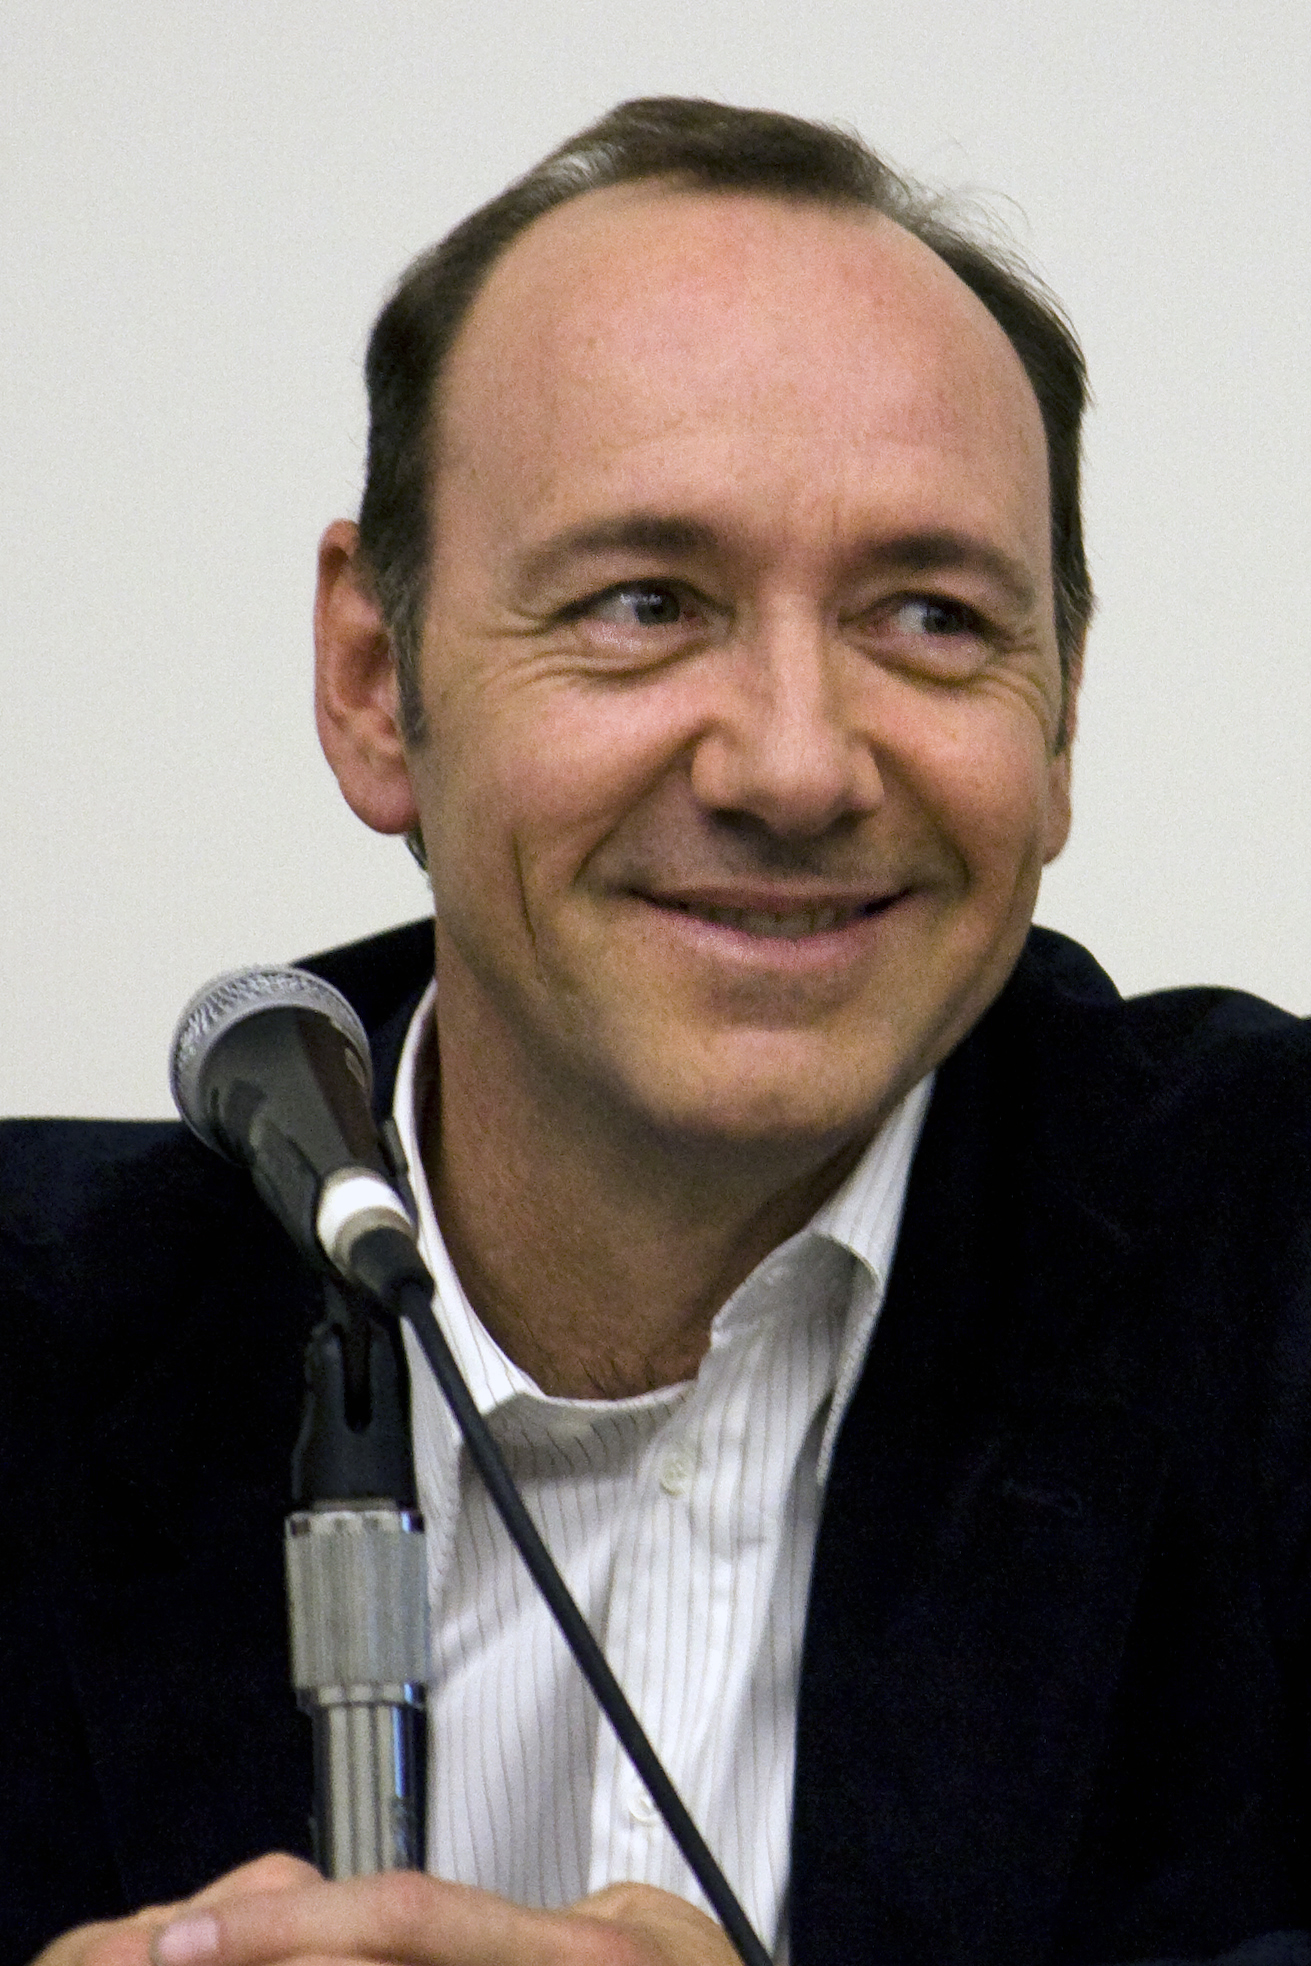 Kevin Spacey earned a  million dollar salary, leaving the net worth at 80 million in 2017